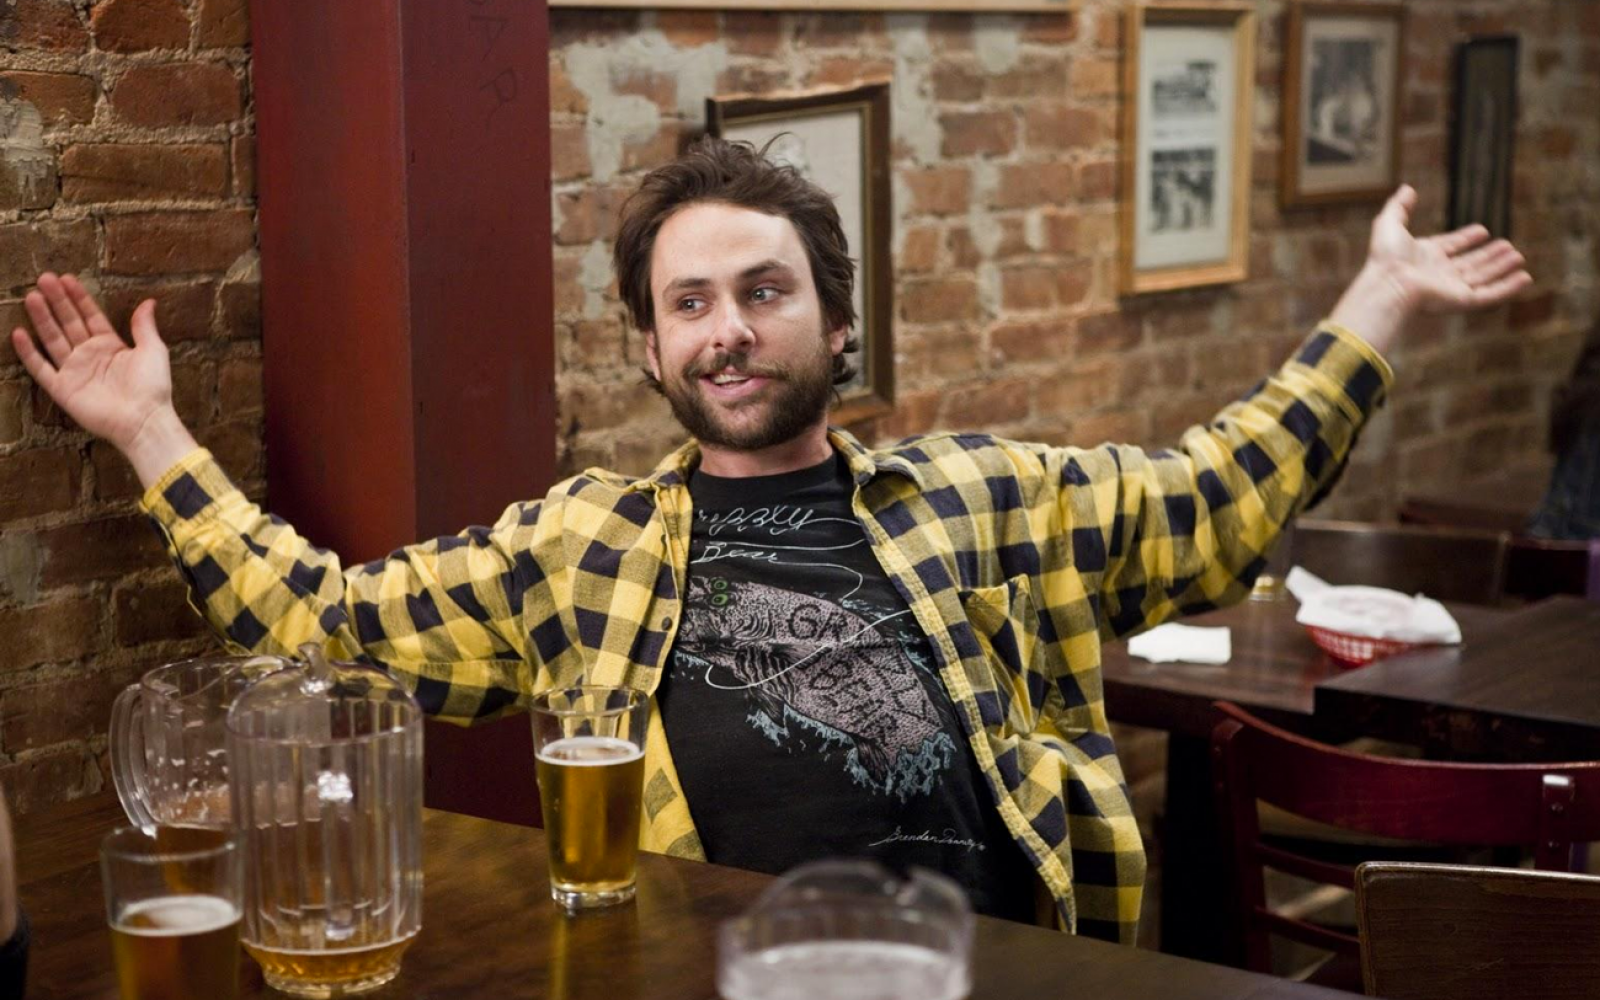 15 Of The Most Inspirational Commencement Speech Quotes From 'It's Always Sunny In Philadelphia's' Charlie Day